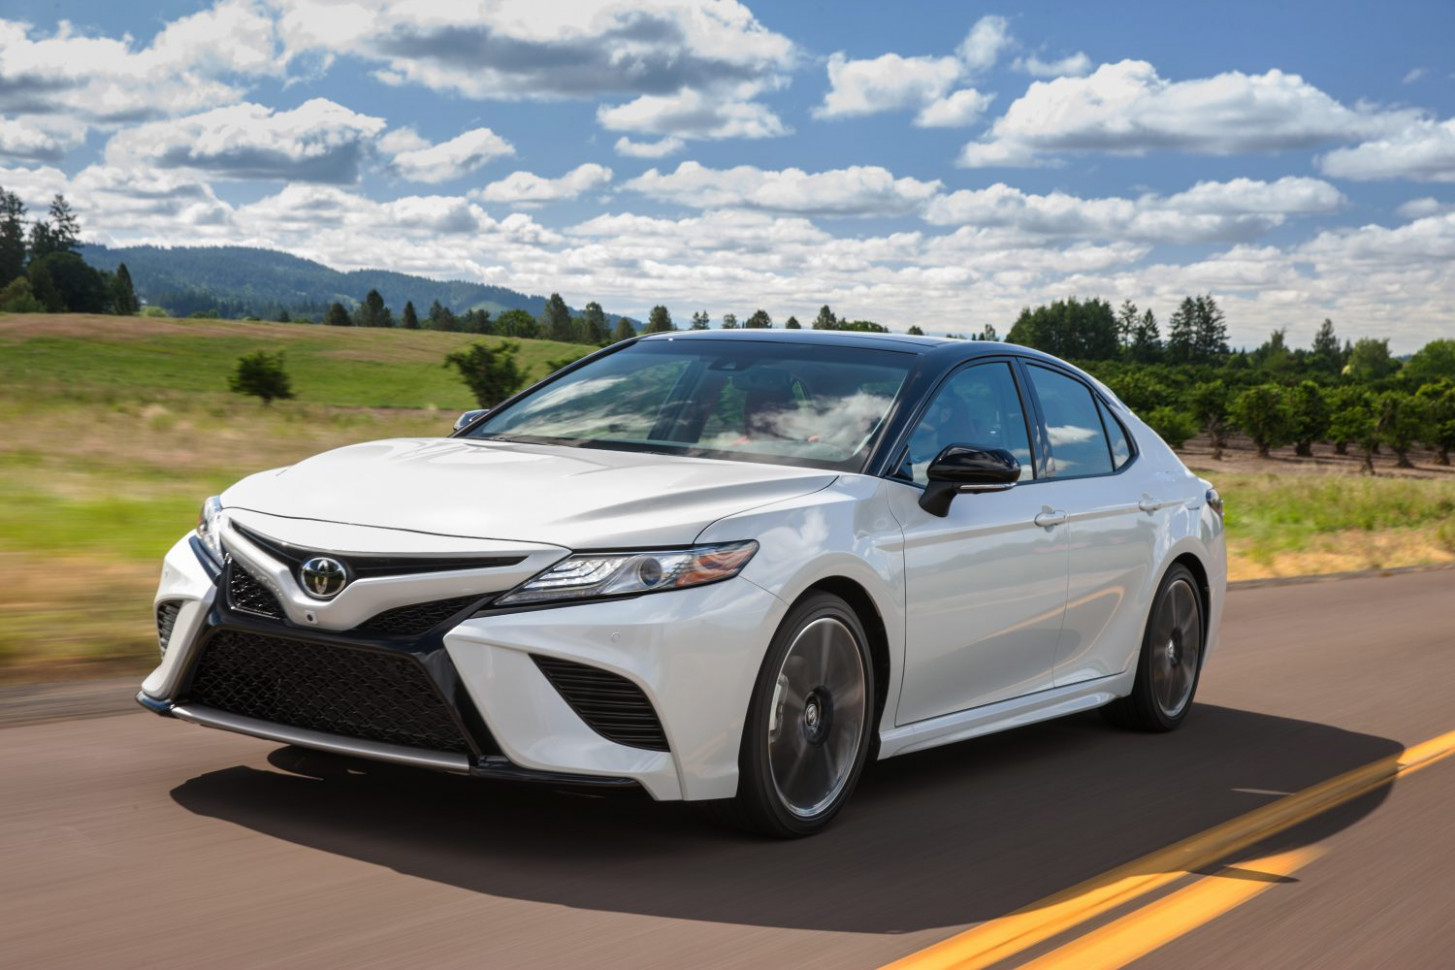 9 Toyota Camry Review, Ratings, Specs, Prices, and Photos - The ..